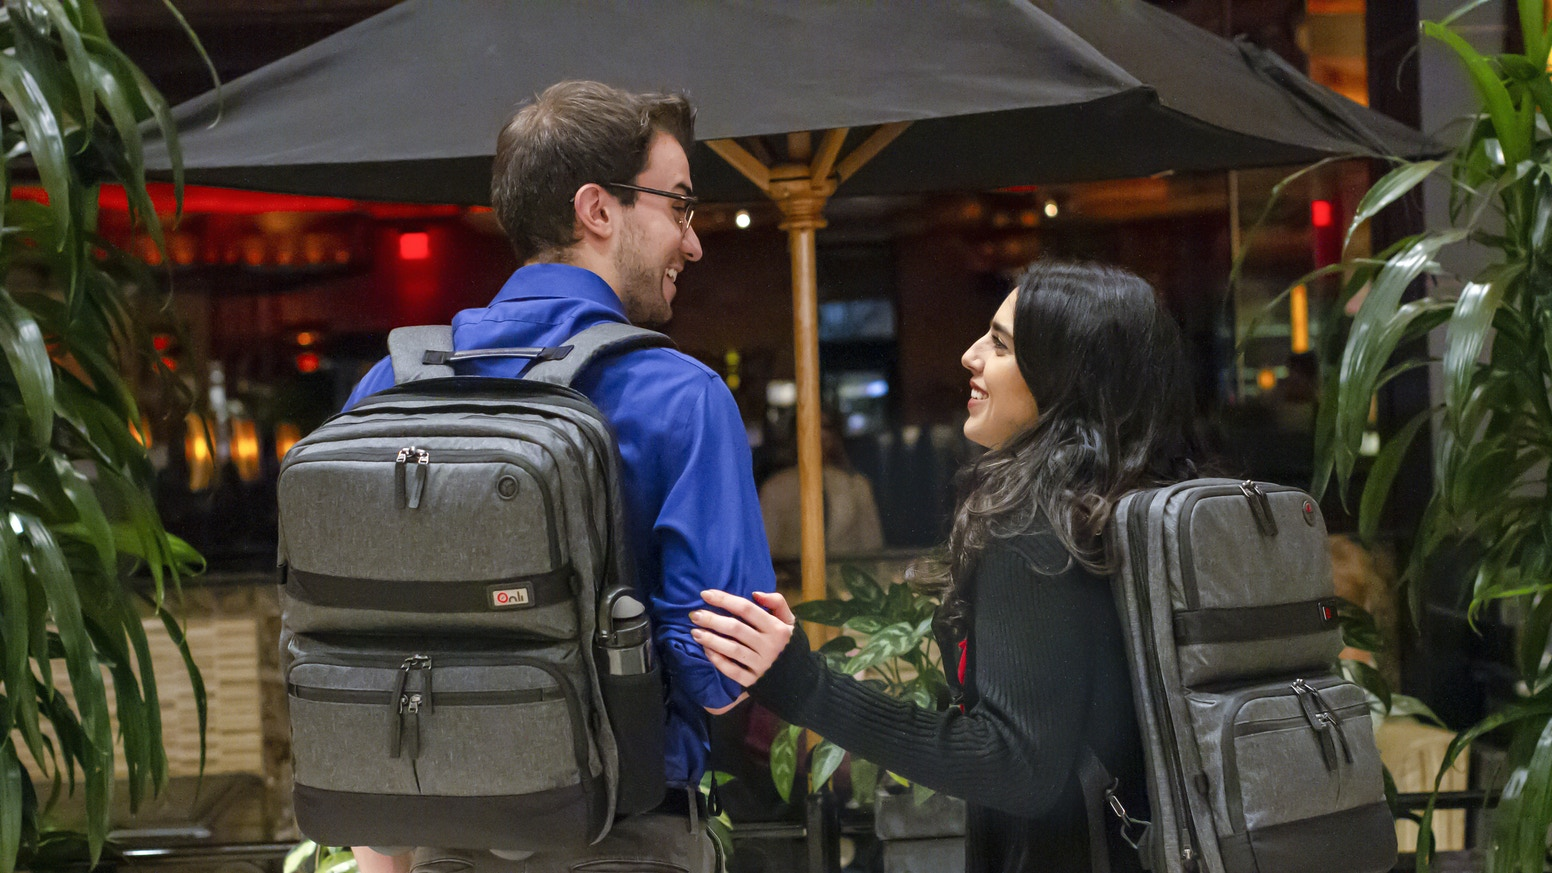 Modular 3-part luggage system that combines a world-class backpack with a carry-on, so it always fits! One bag travel made easy.